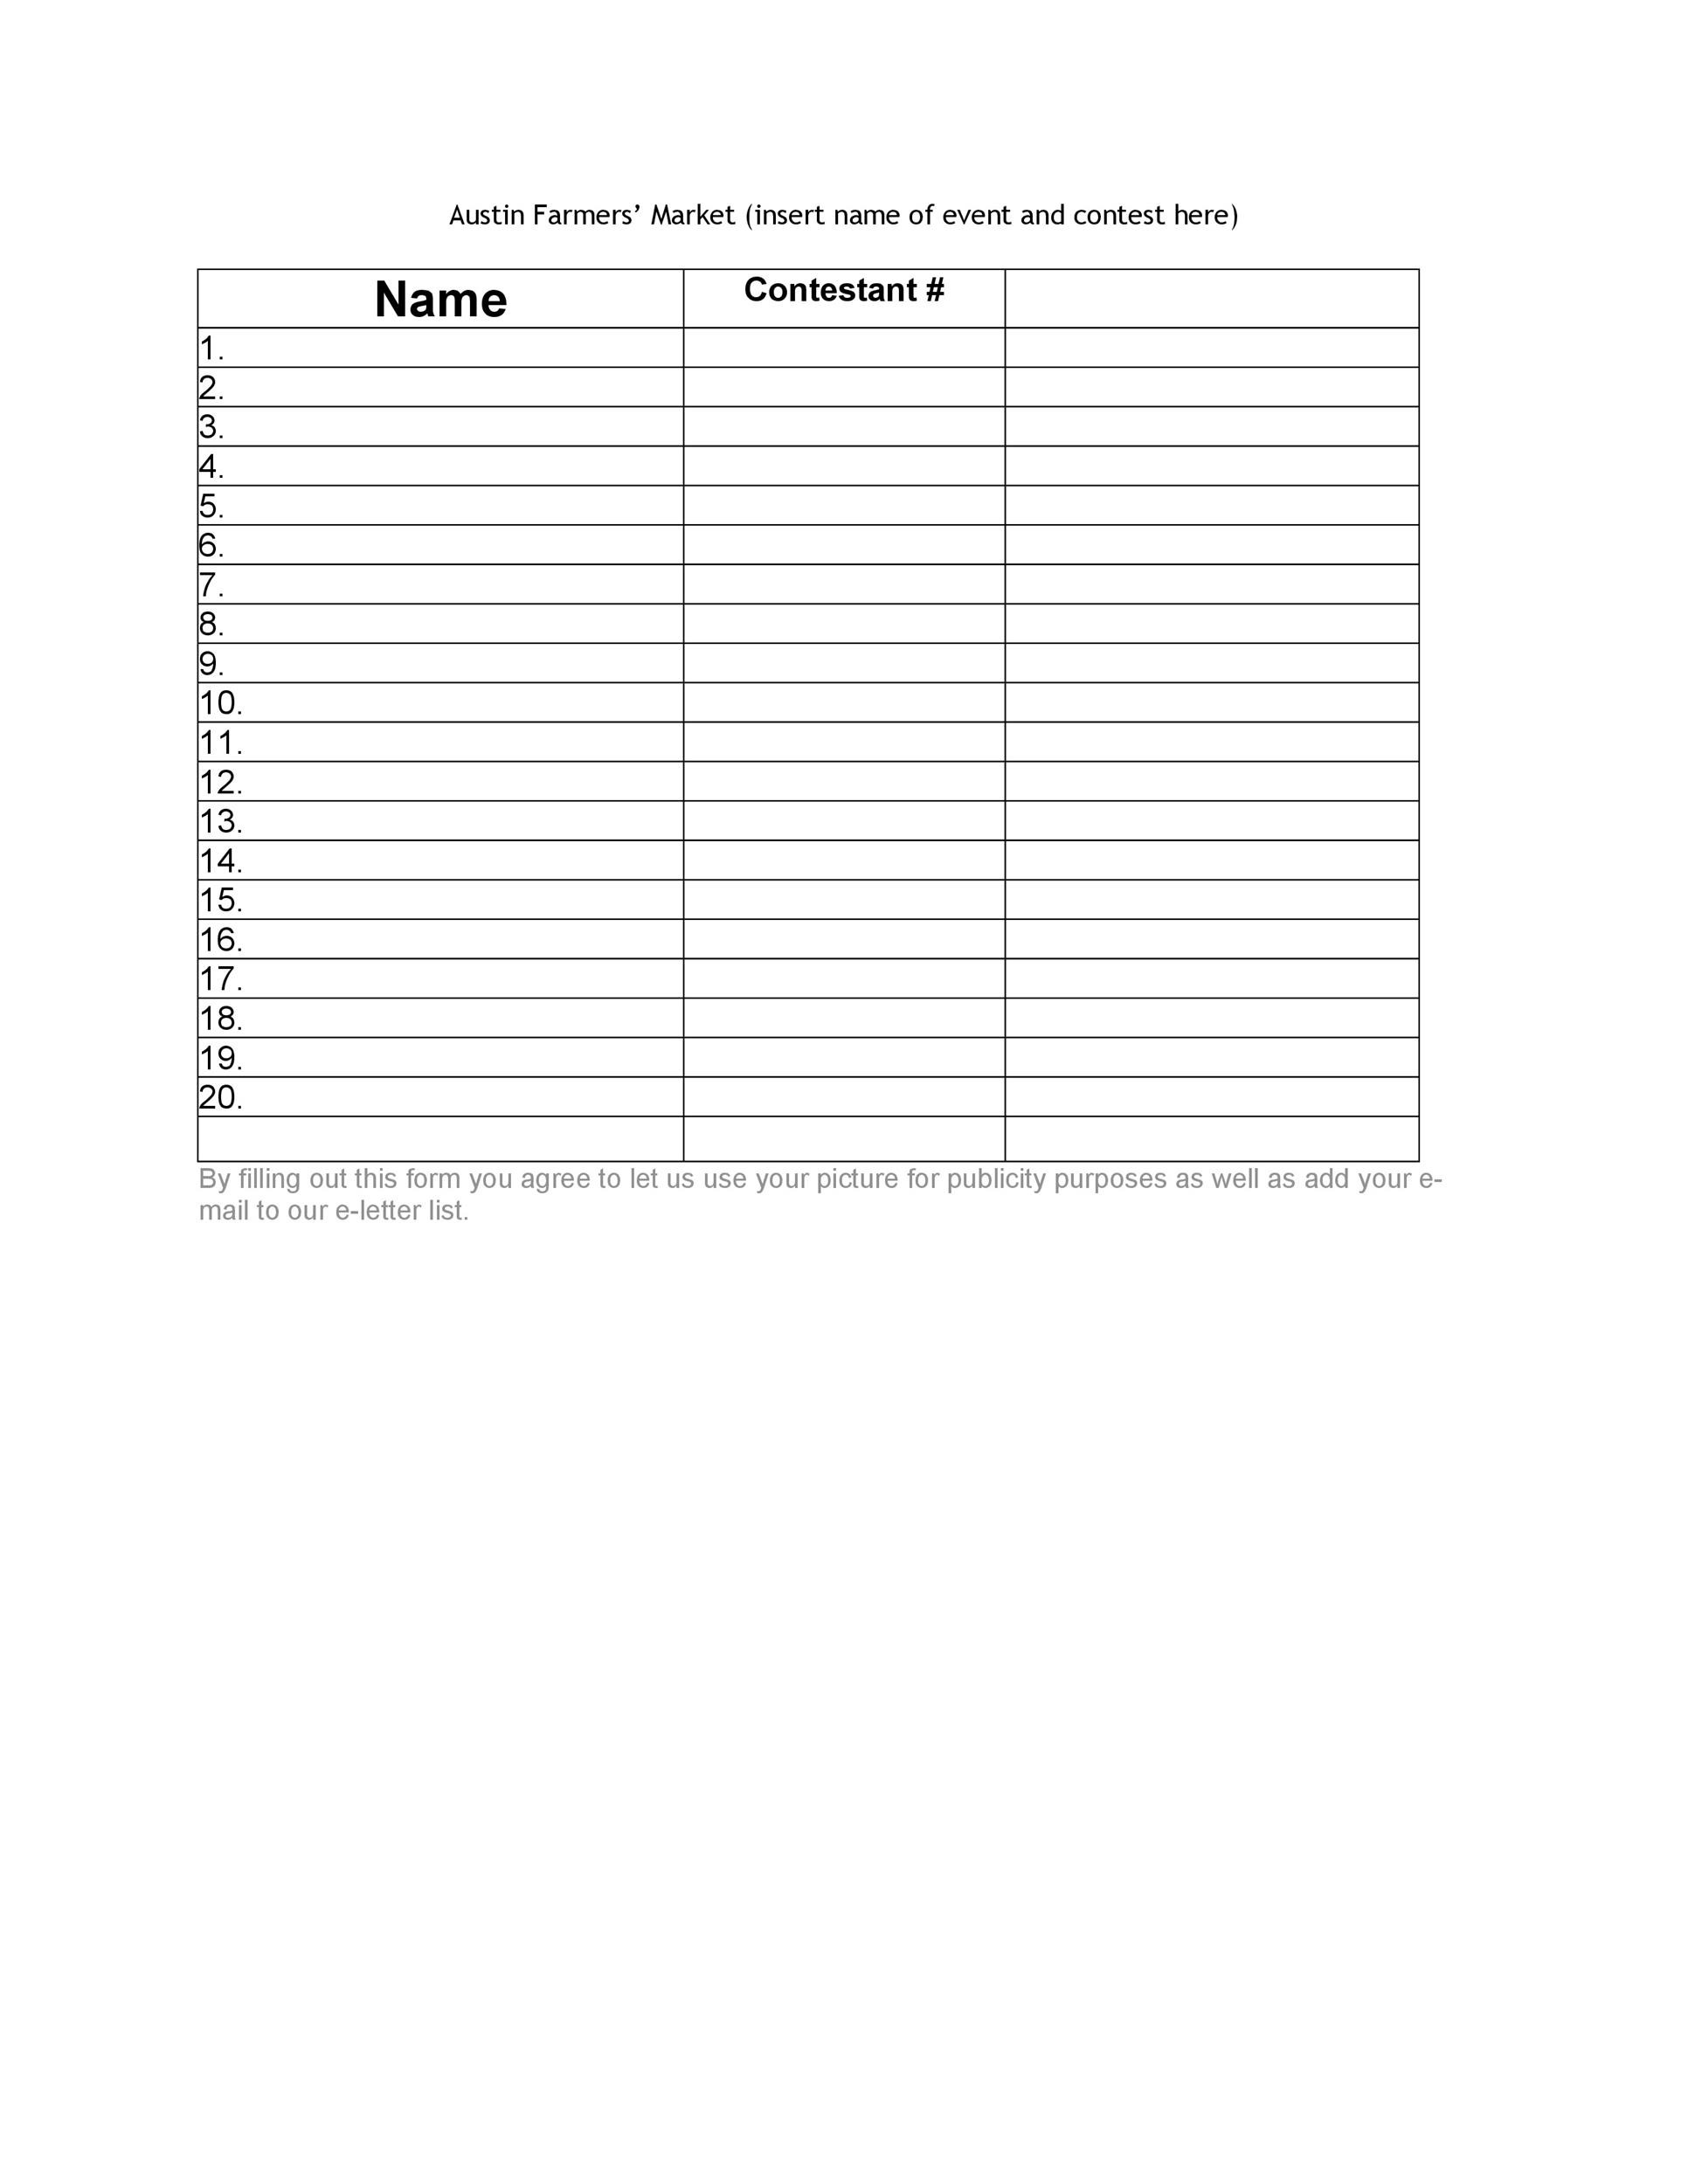 sign up sheet word - Alannoscrapleftbehind - how to create a signup sheet in word